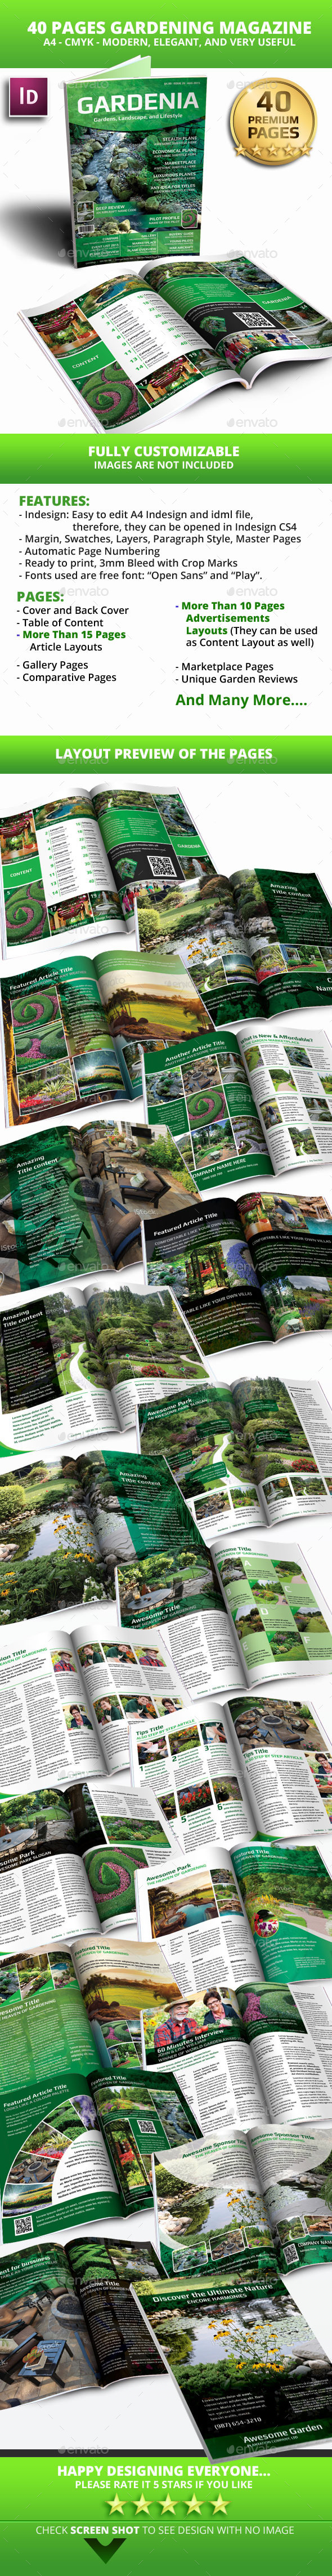 40 Pages Gardenia Modern Magazine Template - Magazines Print Templates